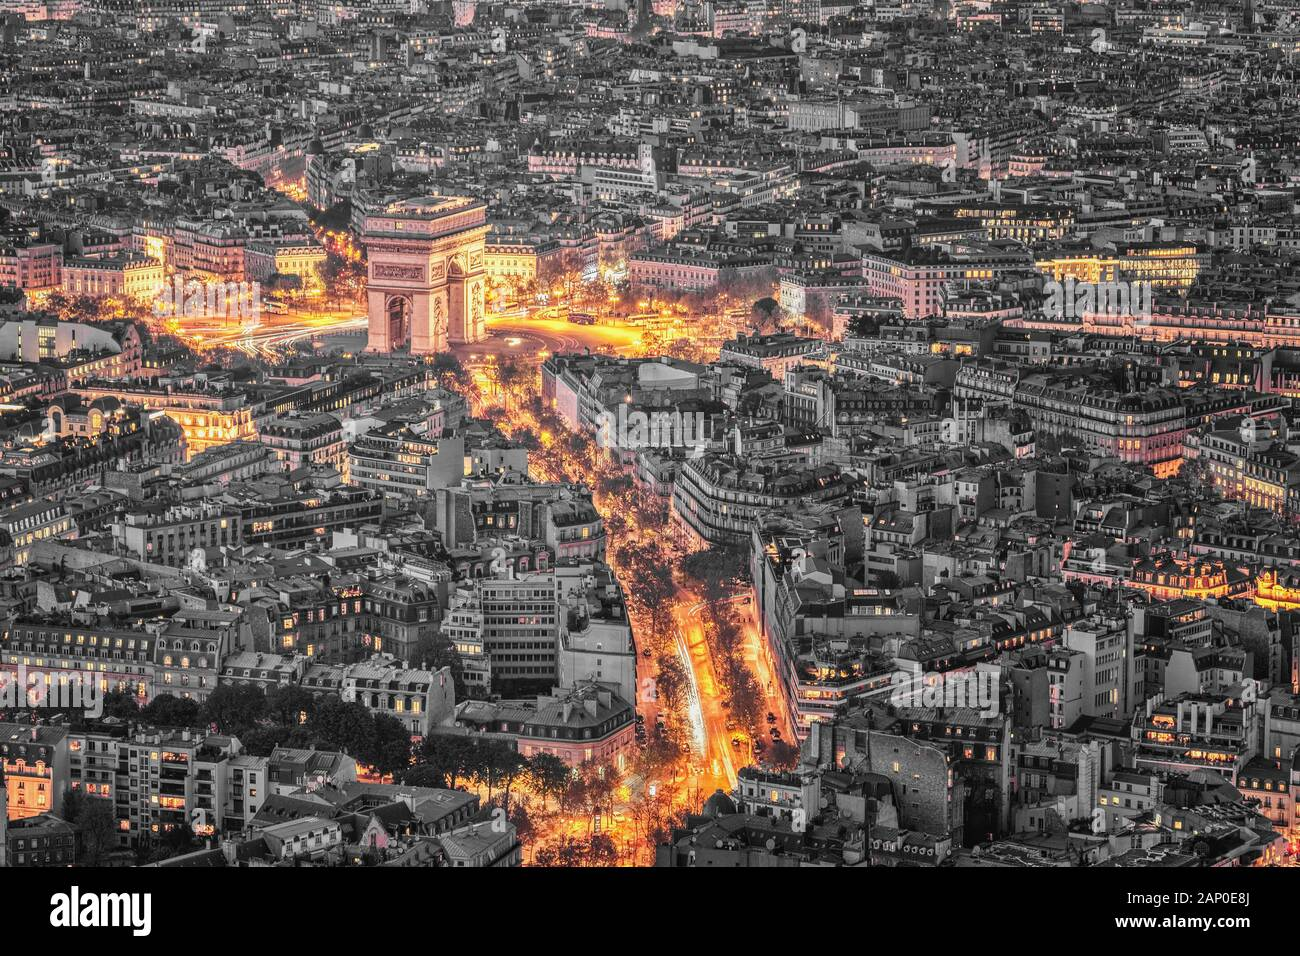 Paris, France - Seine river aerial view.Arc de Triomphe, Eiffel Tower, Champs Elysees and La Defense in the background. Stock Photo